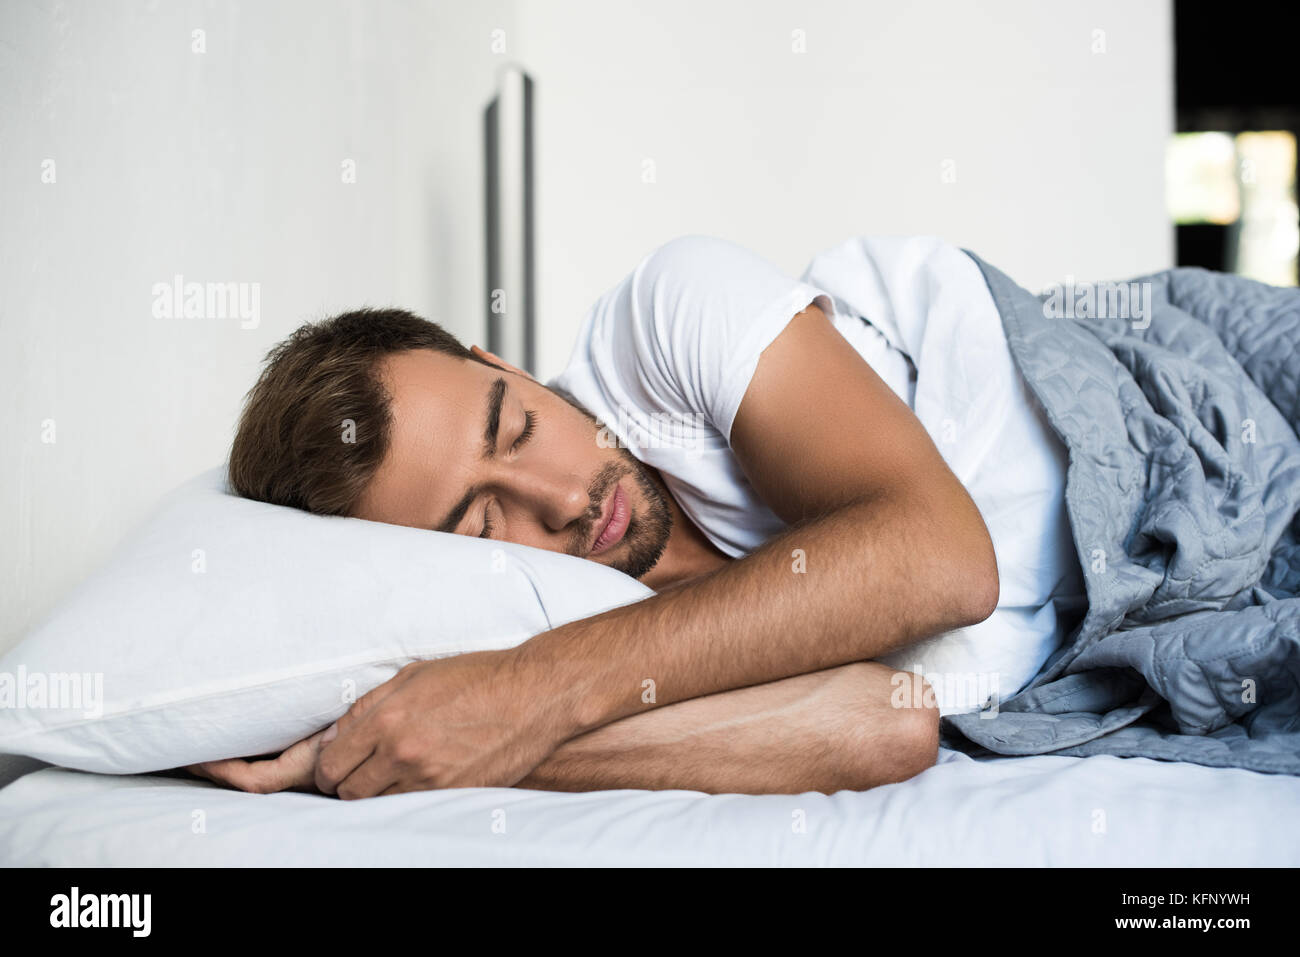 man sleeping in bed  - Stock Image